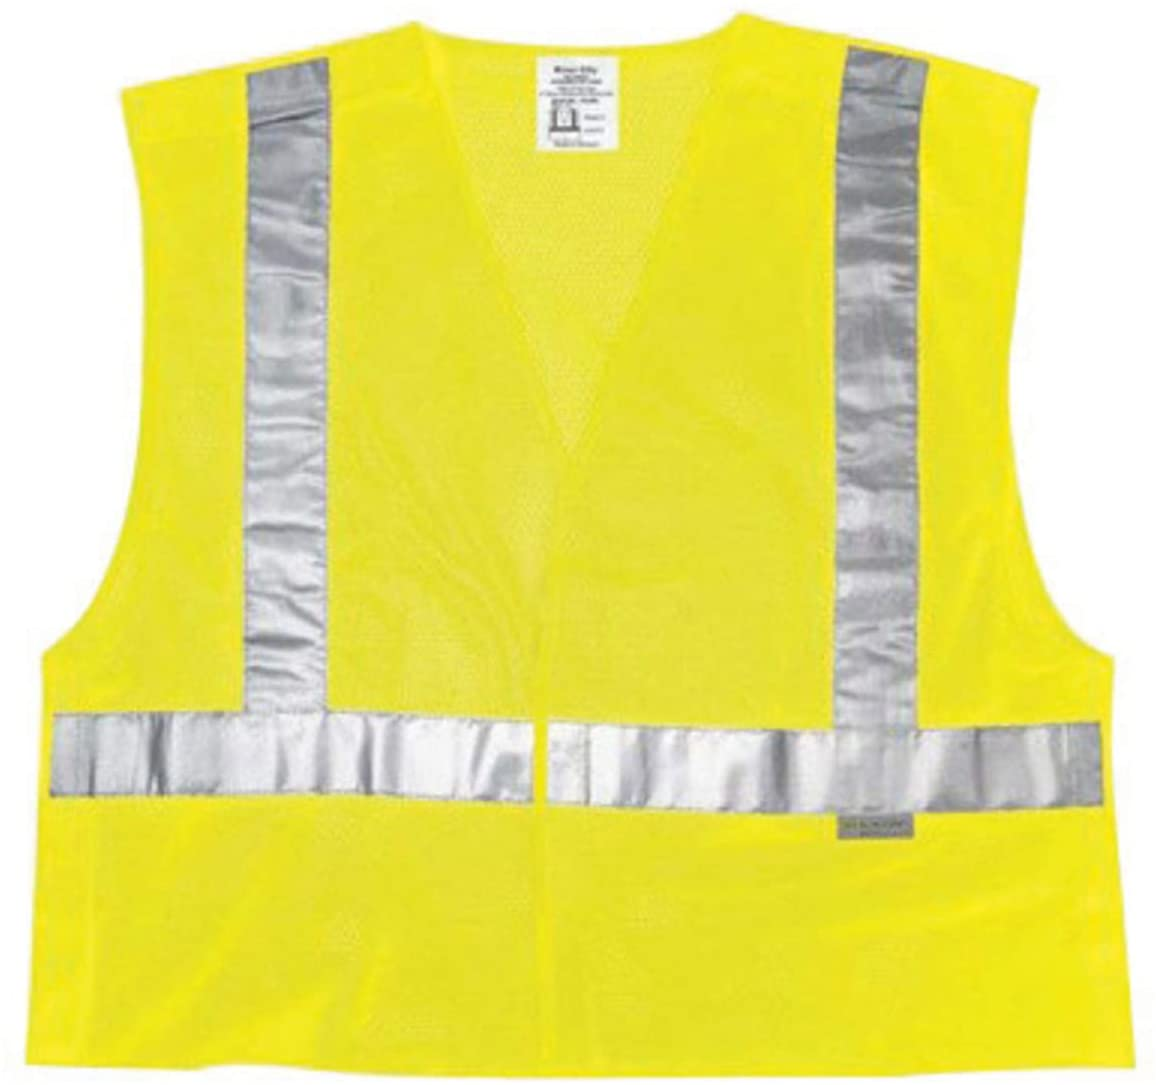 River City Garments Large Hi-Viz Lime Solid Polyester Mesh Class 2 Tear Away Vest With Front Hook And Loop Closure And 3M Scotchlite 2